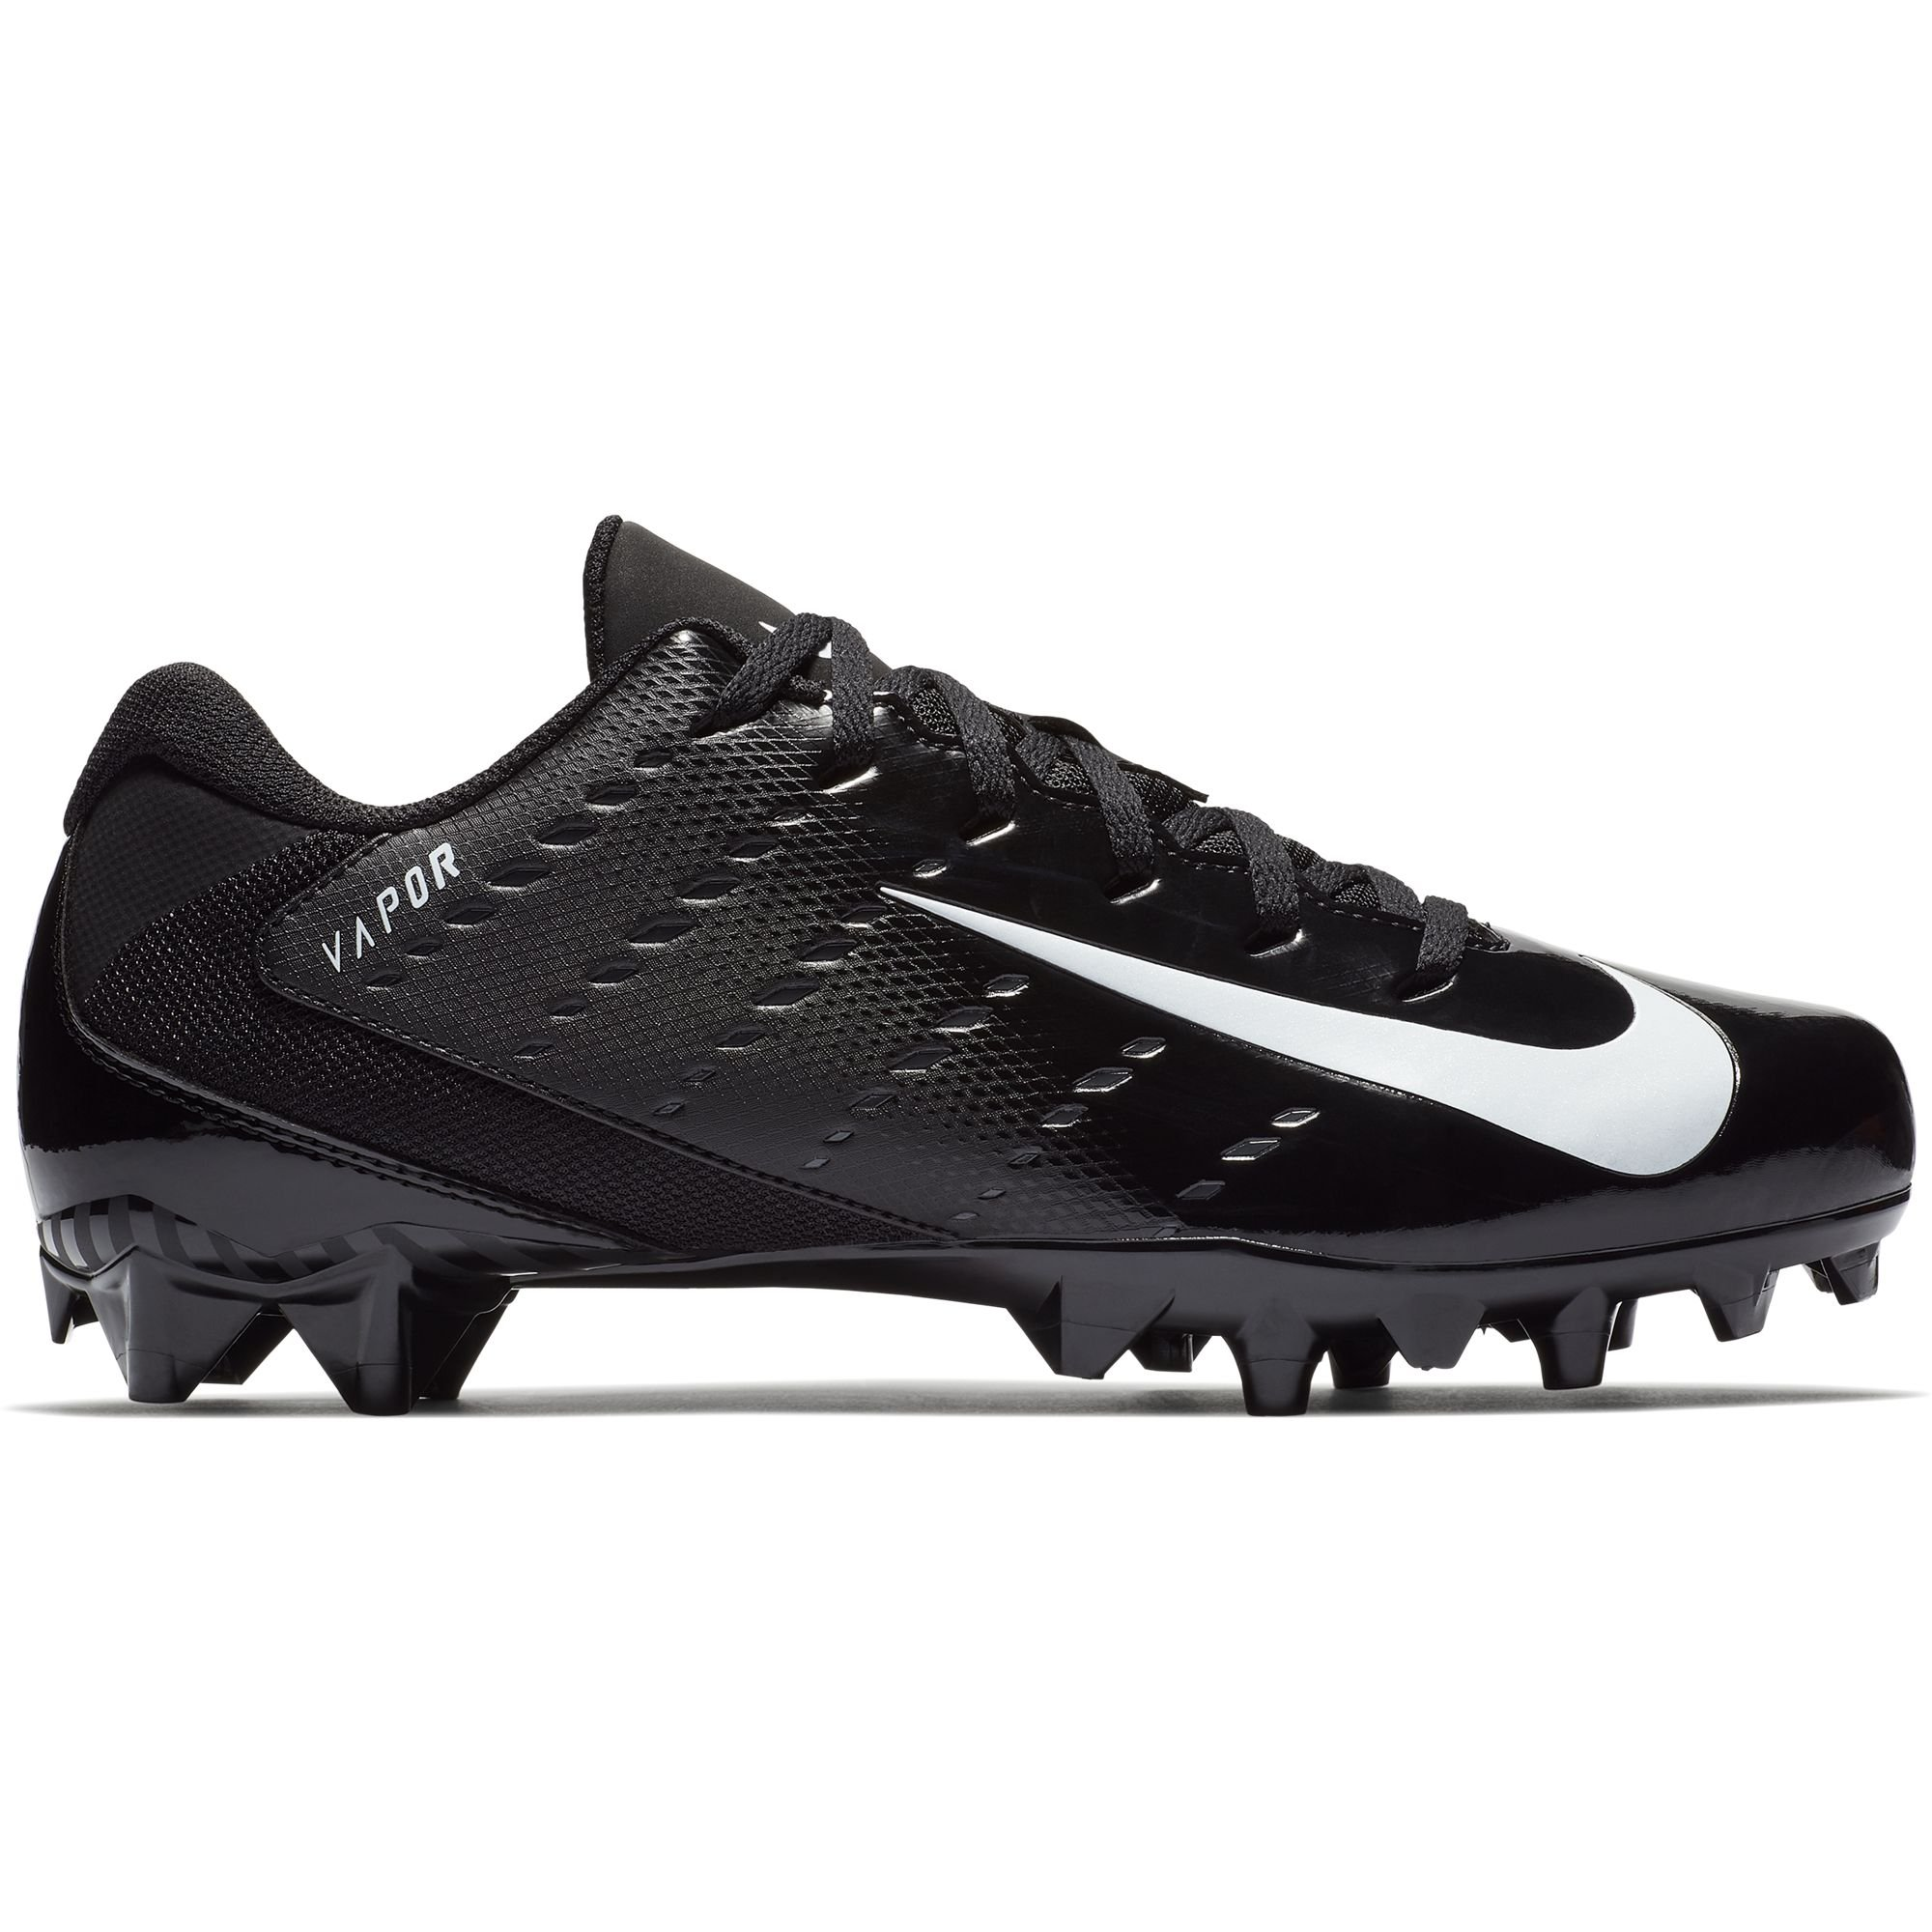 NIKE Men's Vapor Untouchable Varsity 3 TD Football Cleat Black/White/Anthracite Size 11 M US by NIKE